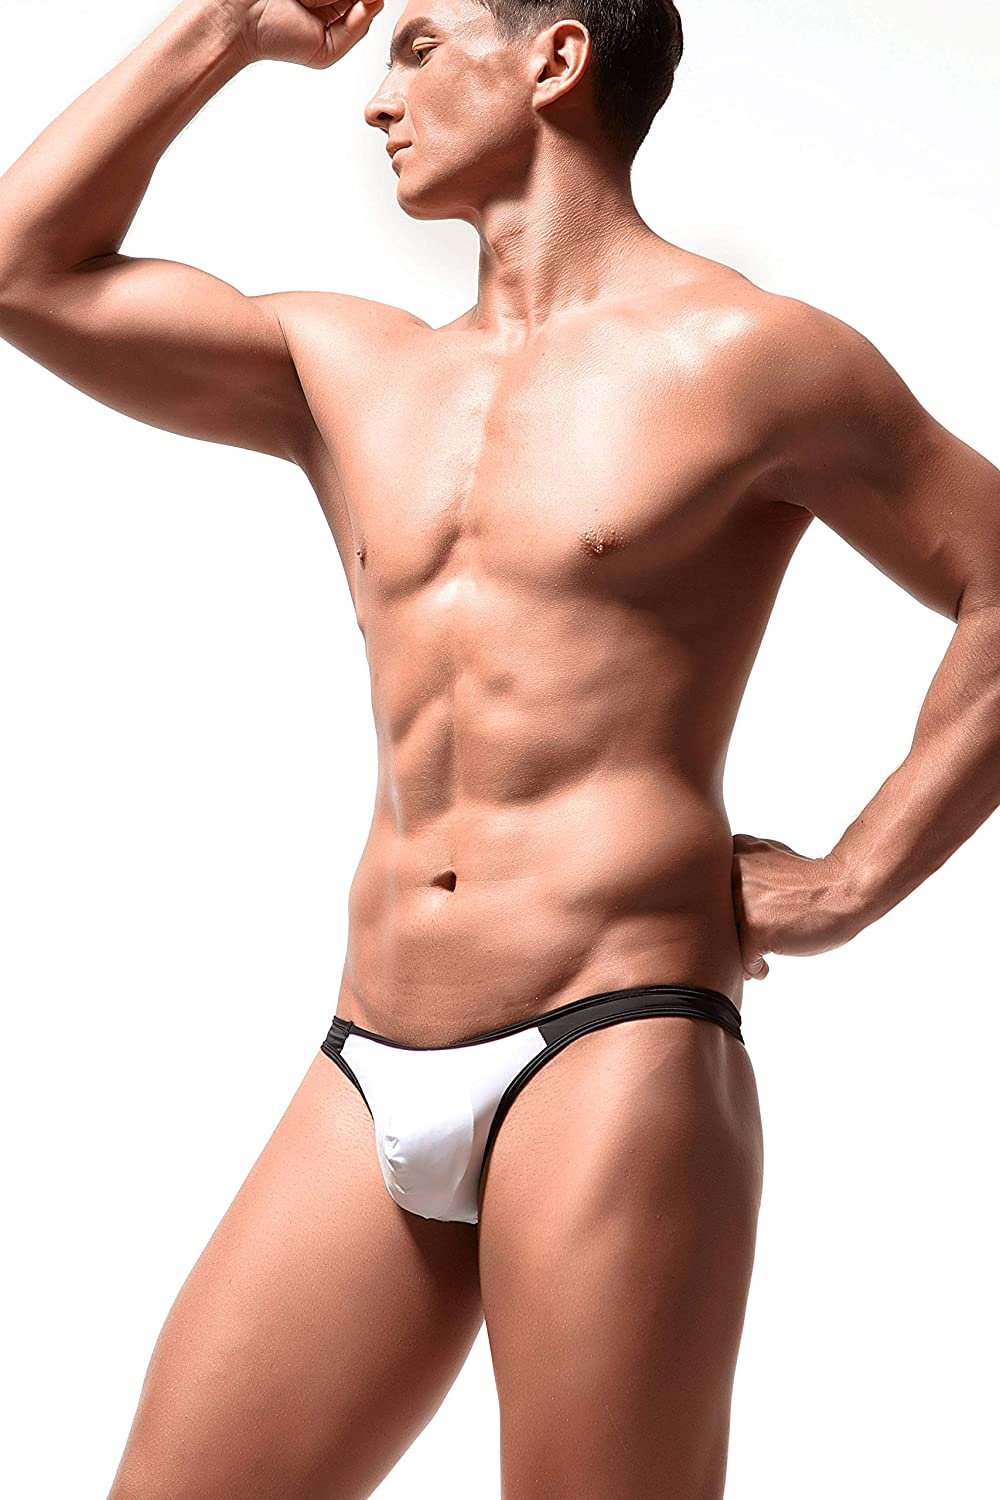 Newsywell Mens 3-Pack Ice Silk Thongs T-Back Low Rise G-String Bikini Briefs Underwear